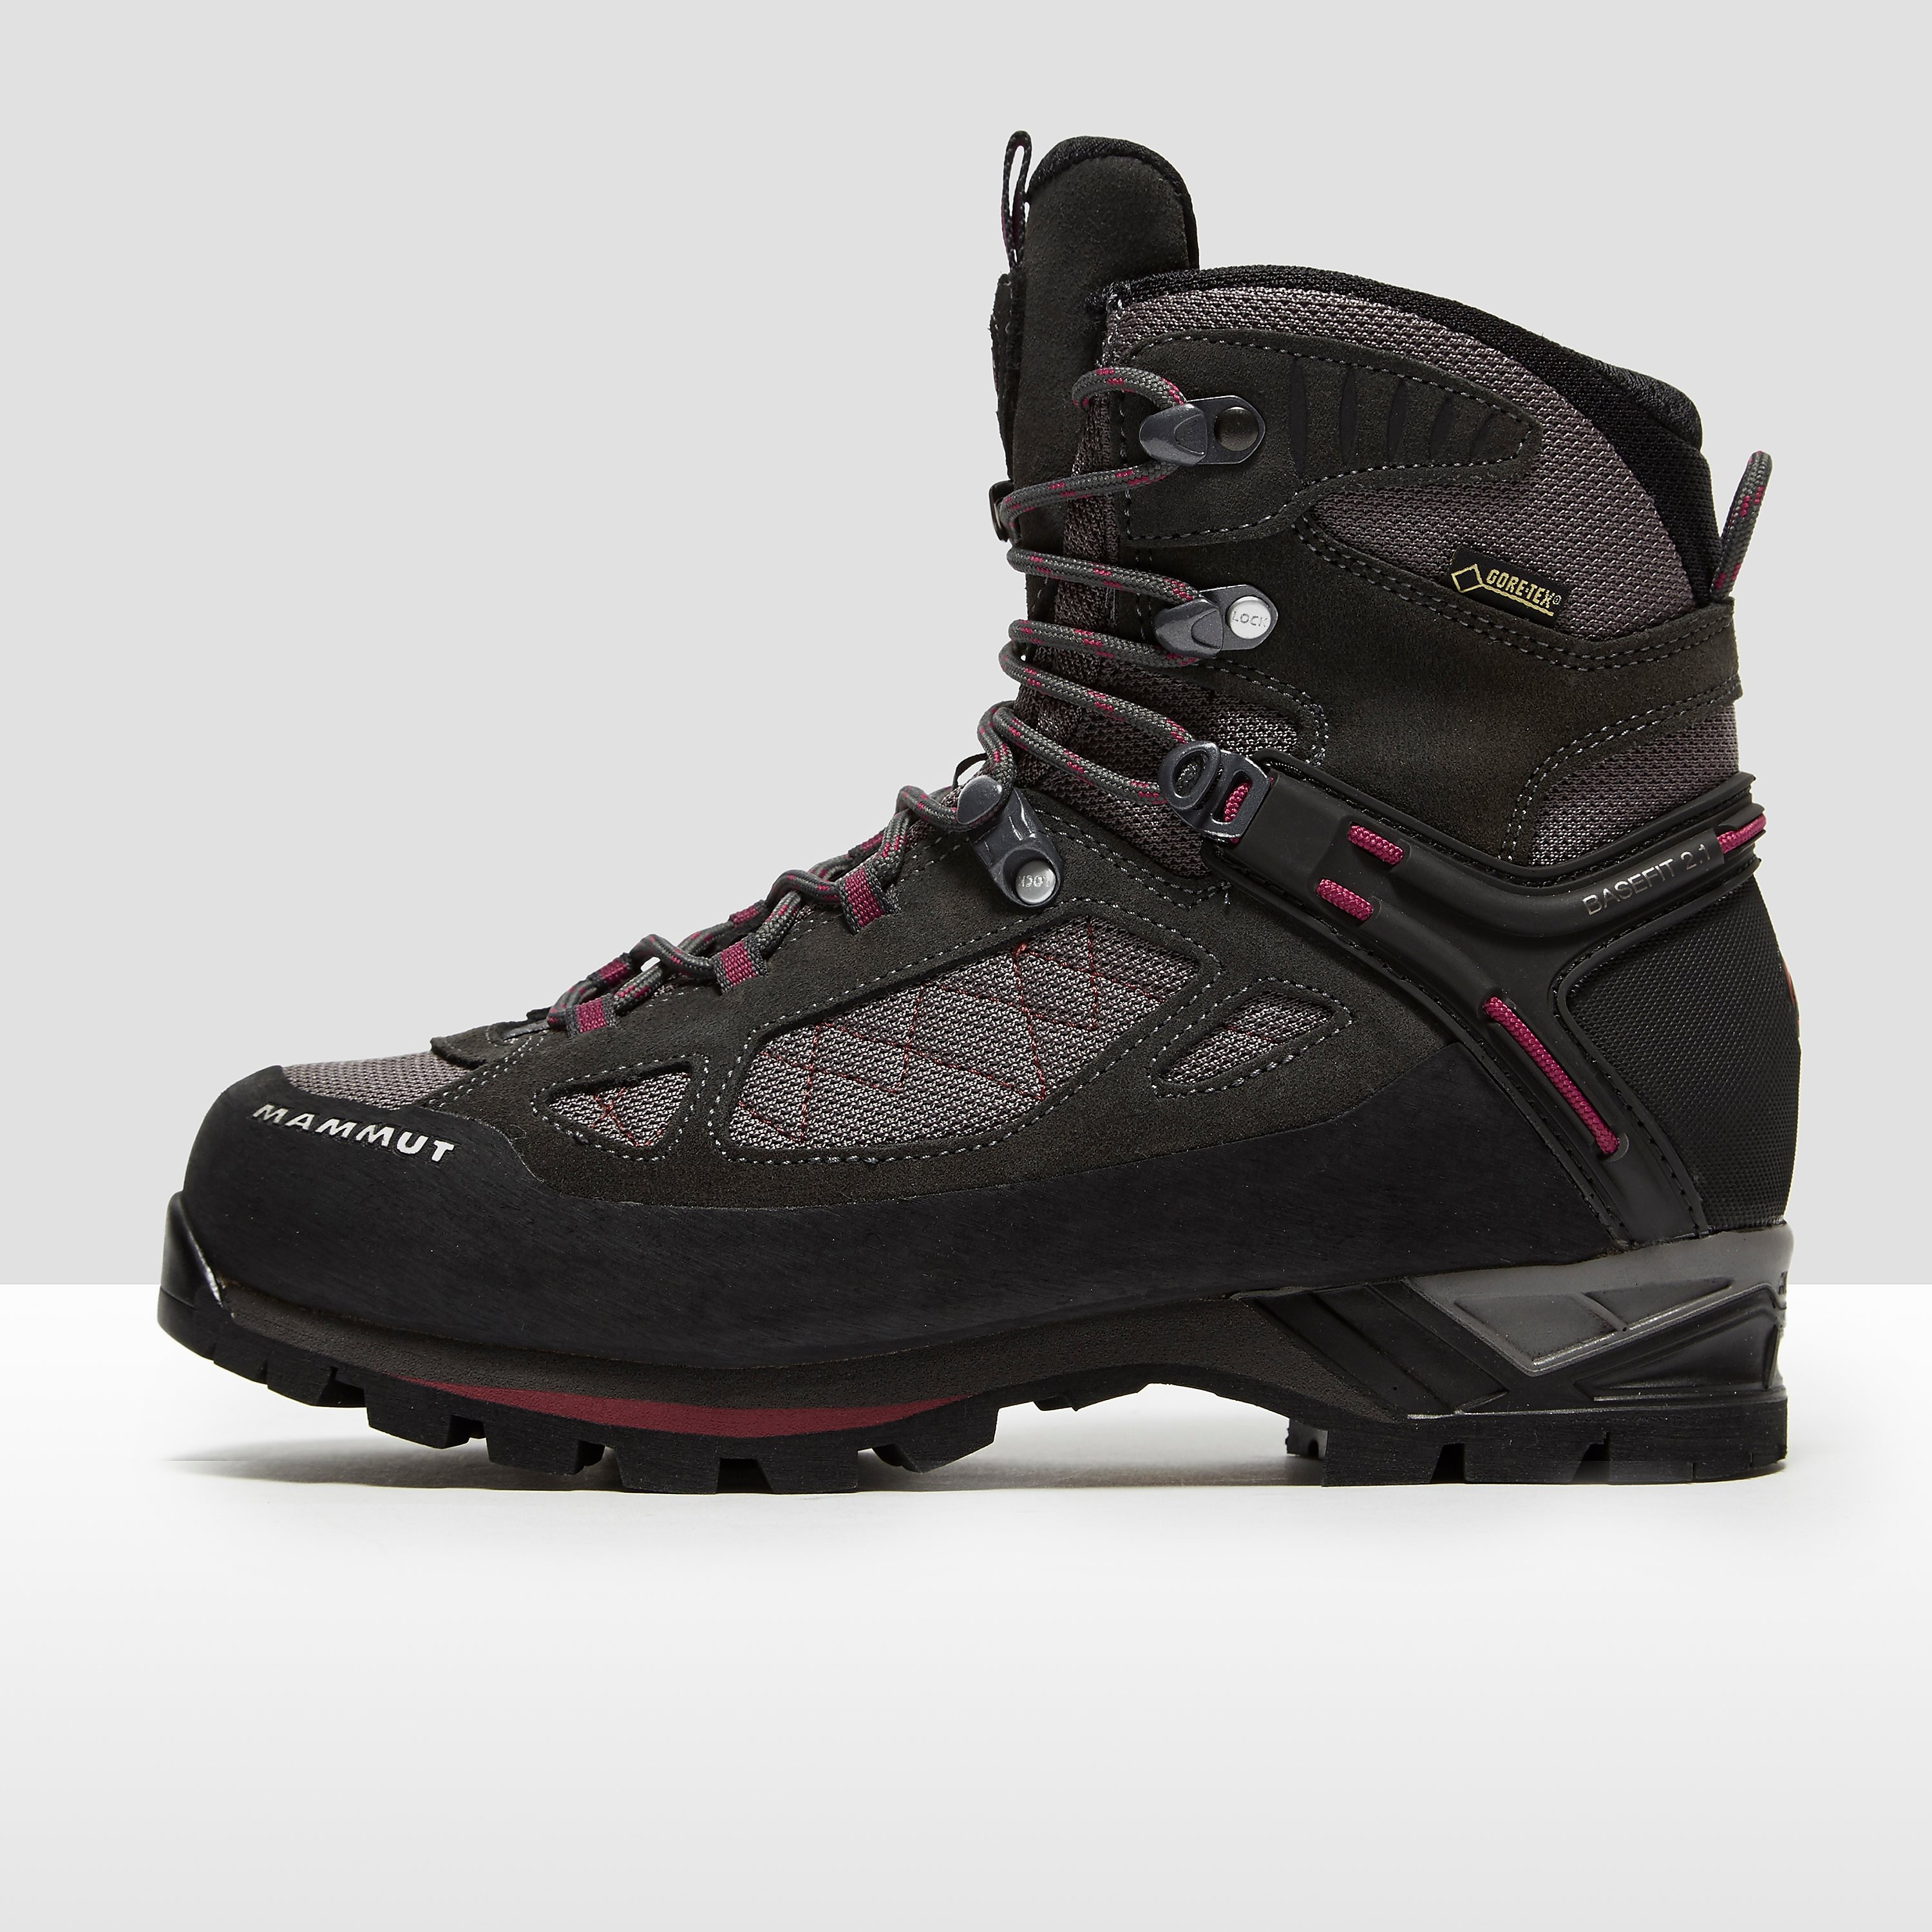 Marmot Alto Guide High Gore- Tex Women's Hiking Boots